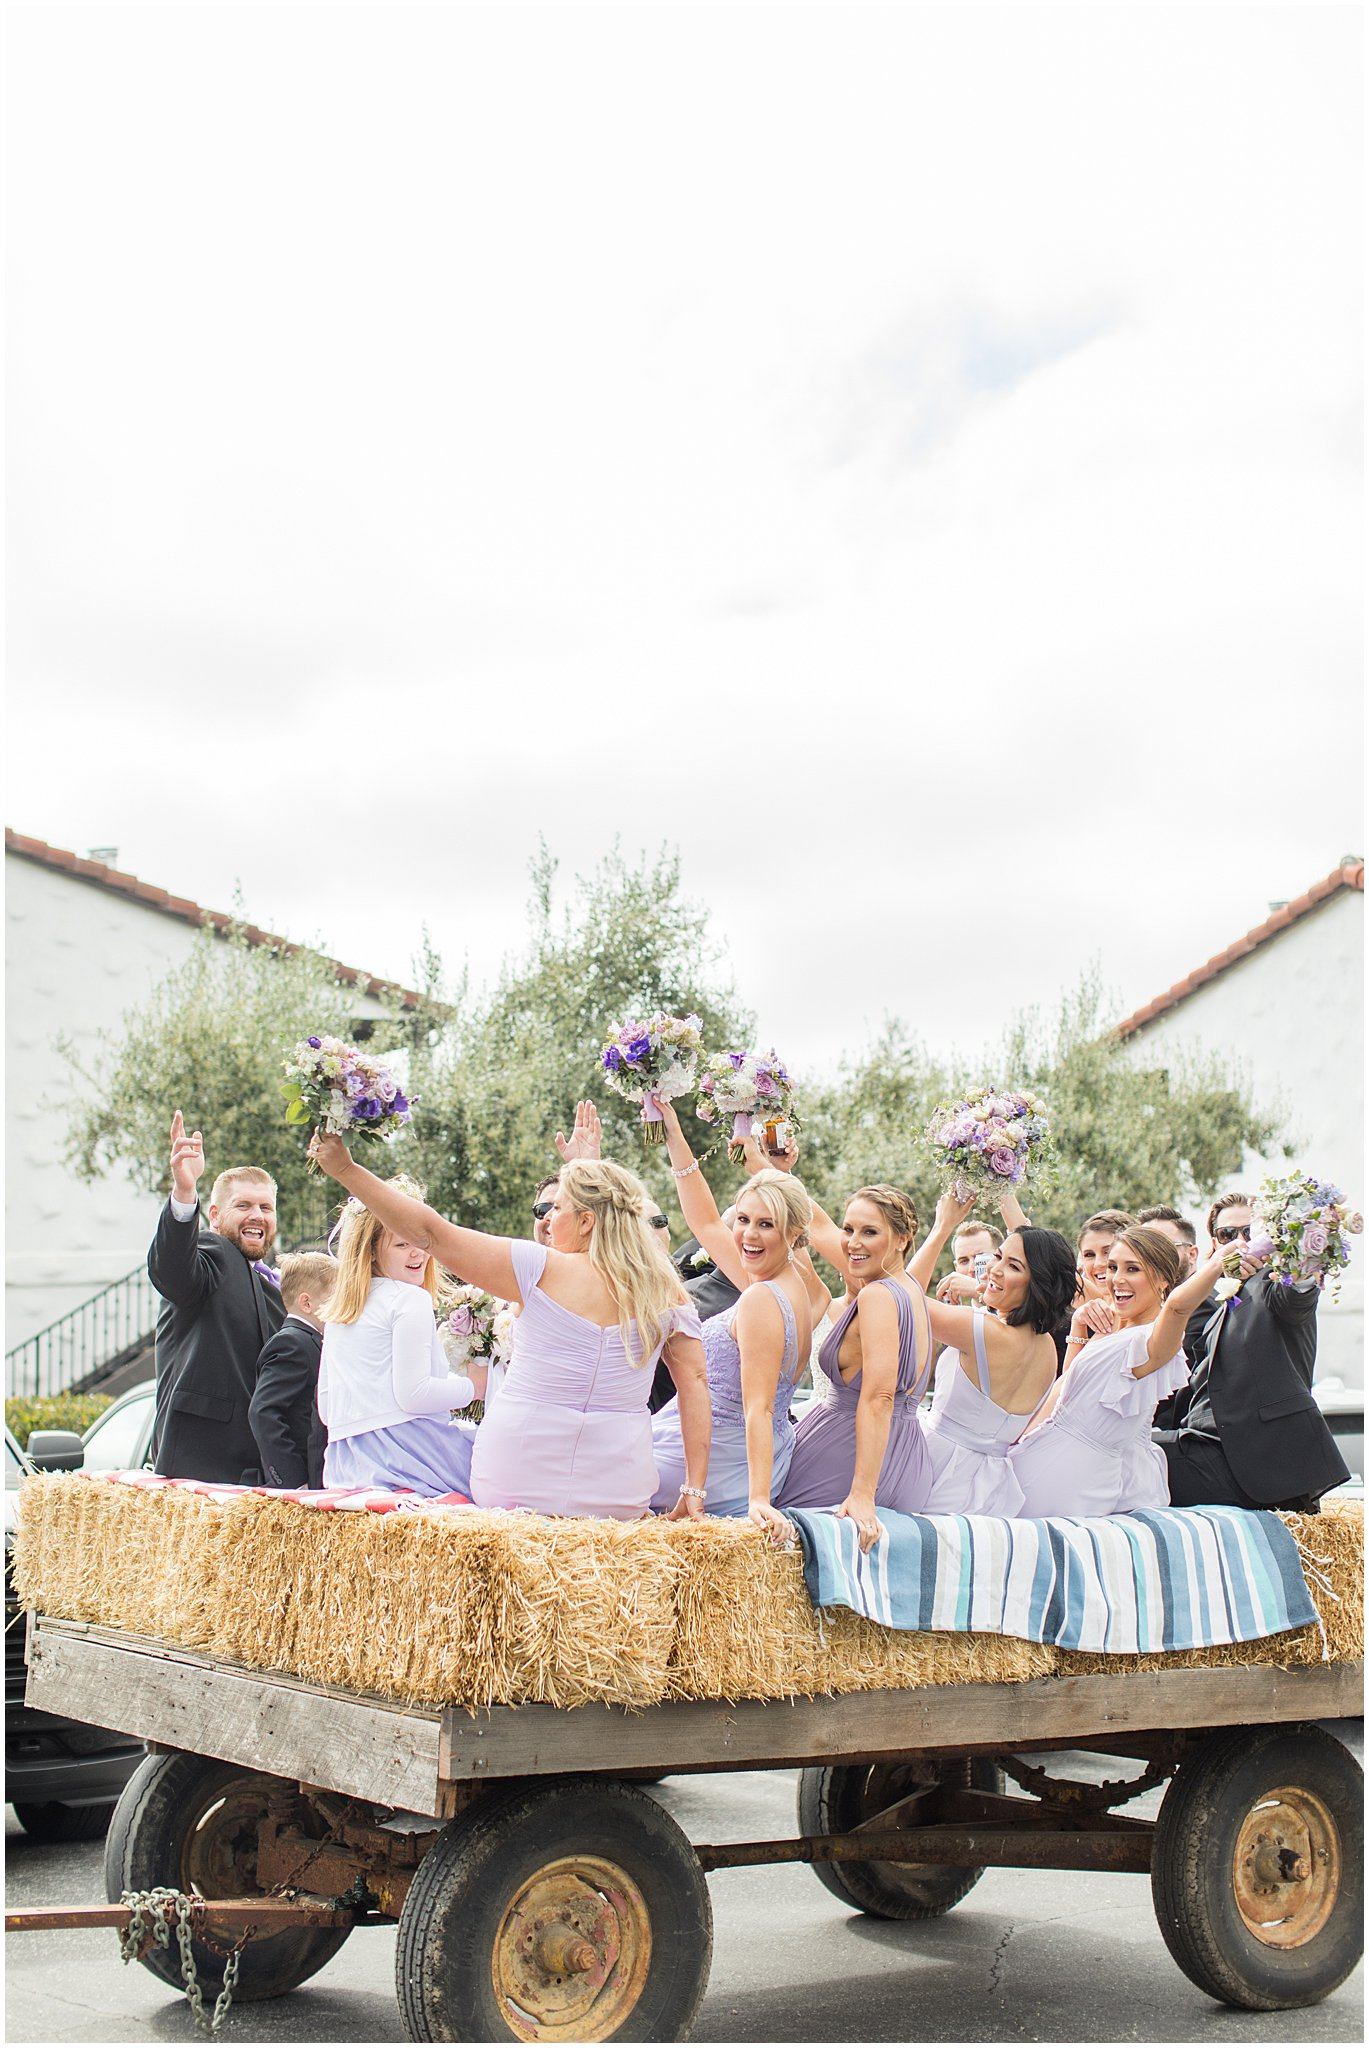 2019 wedding san juan bautista hacienda de leal vineyards bay area wedding photographer_0059.jpg